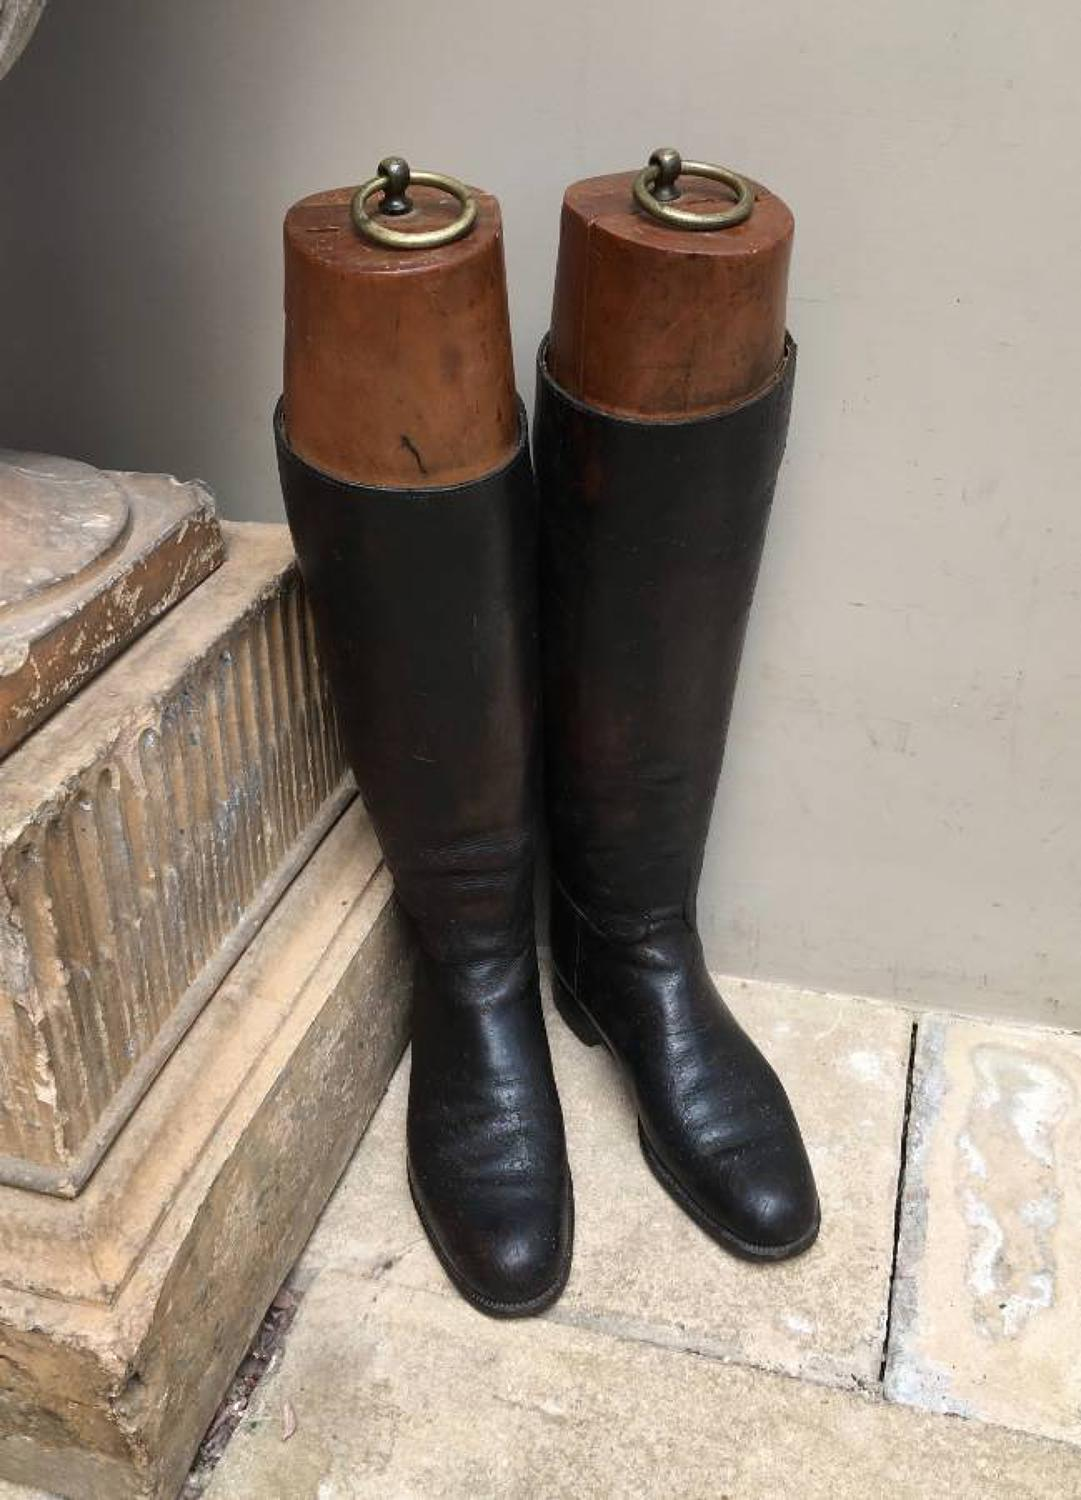 Edwardian Leather Riding Boots with Original Wooden Boot Trees